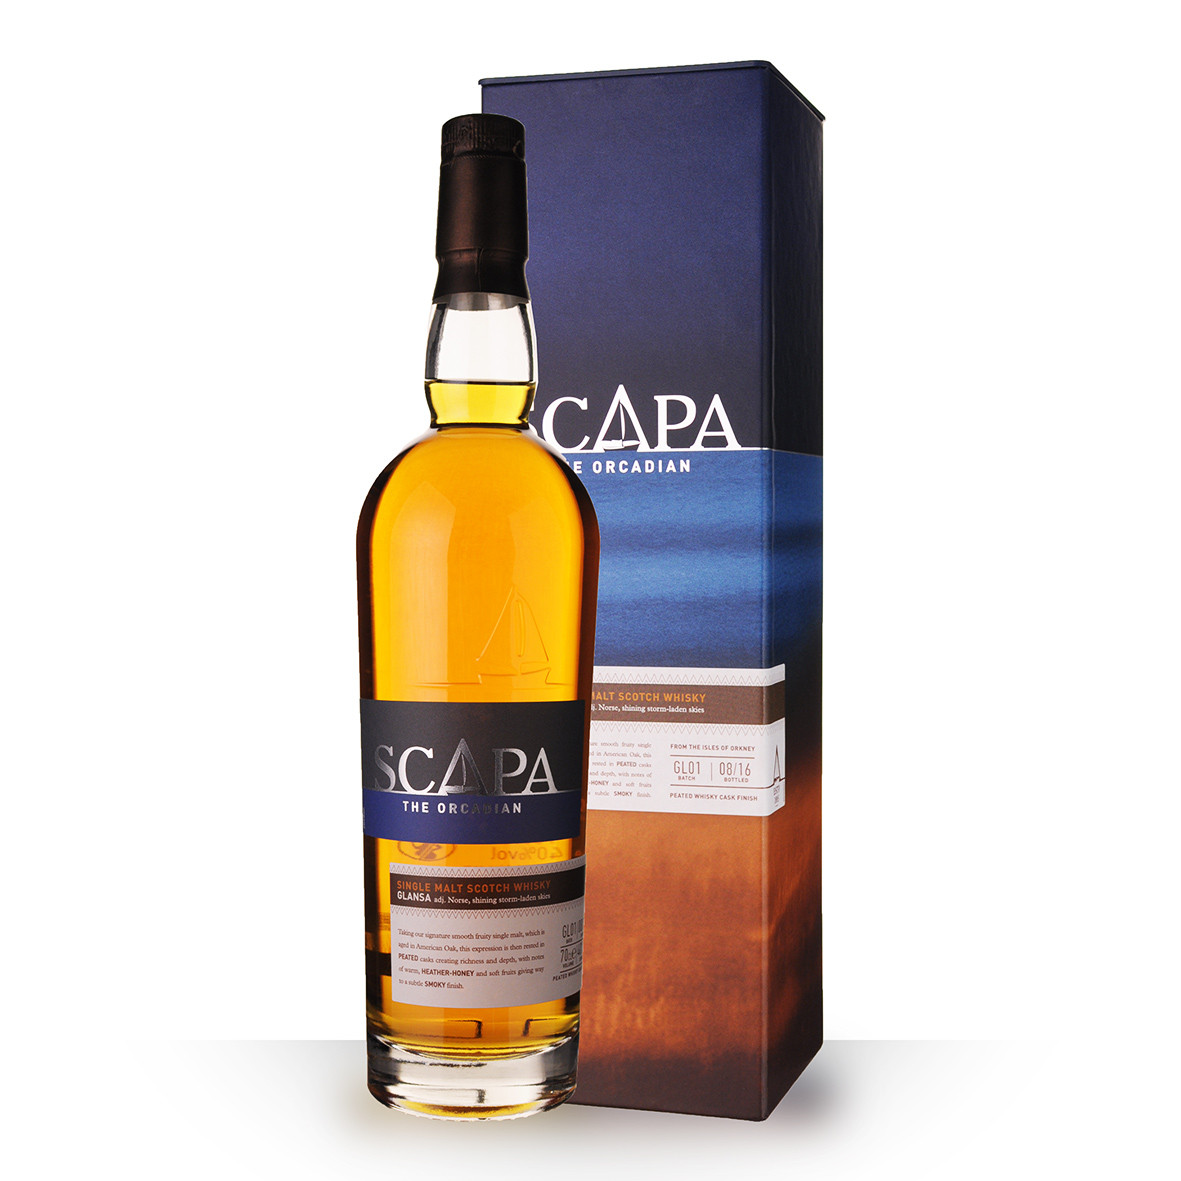 Whisky Scapa Glansa 70cl Coffret www.odyssee-vins.com